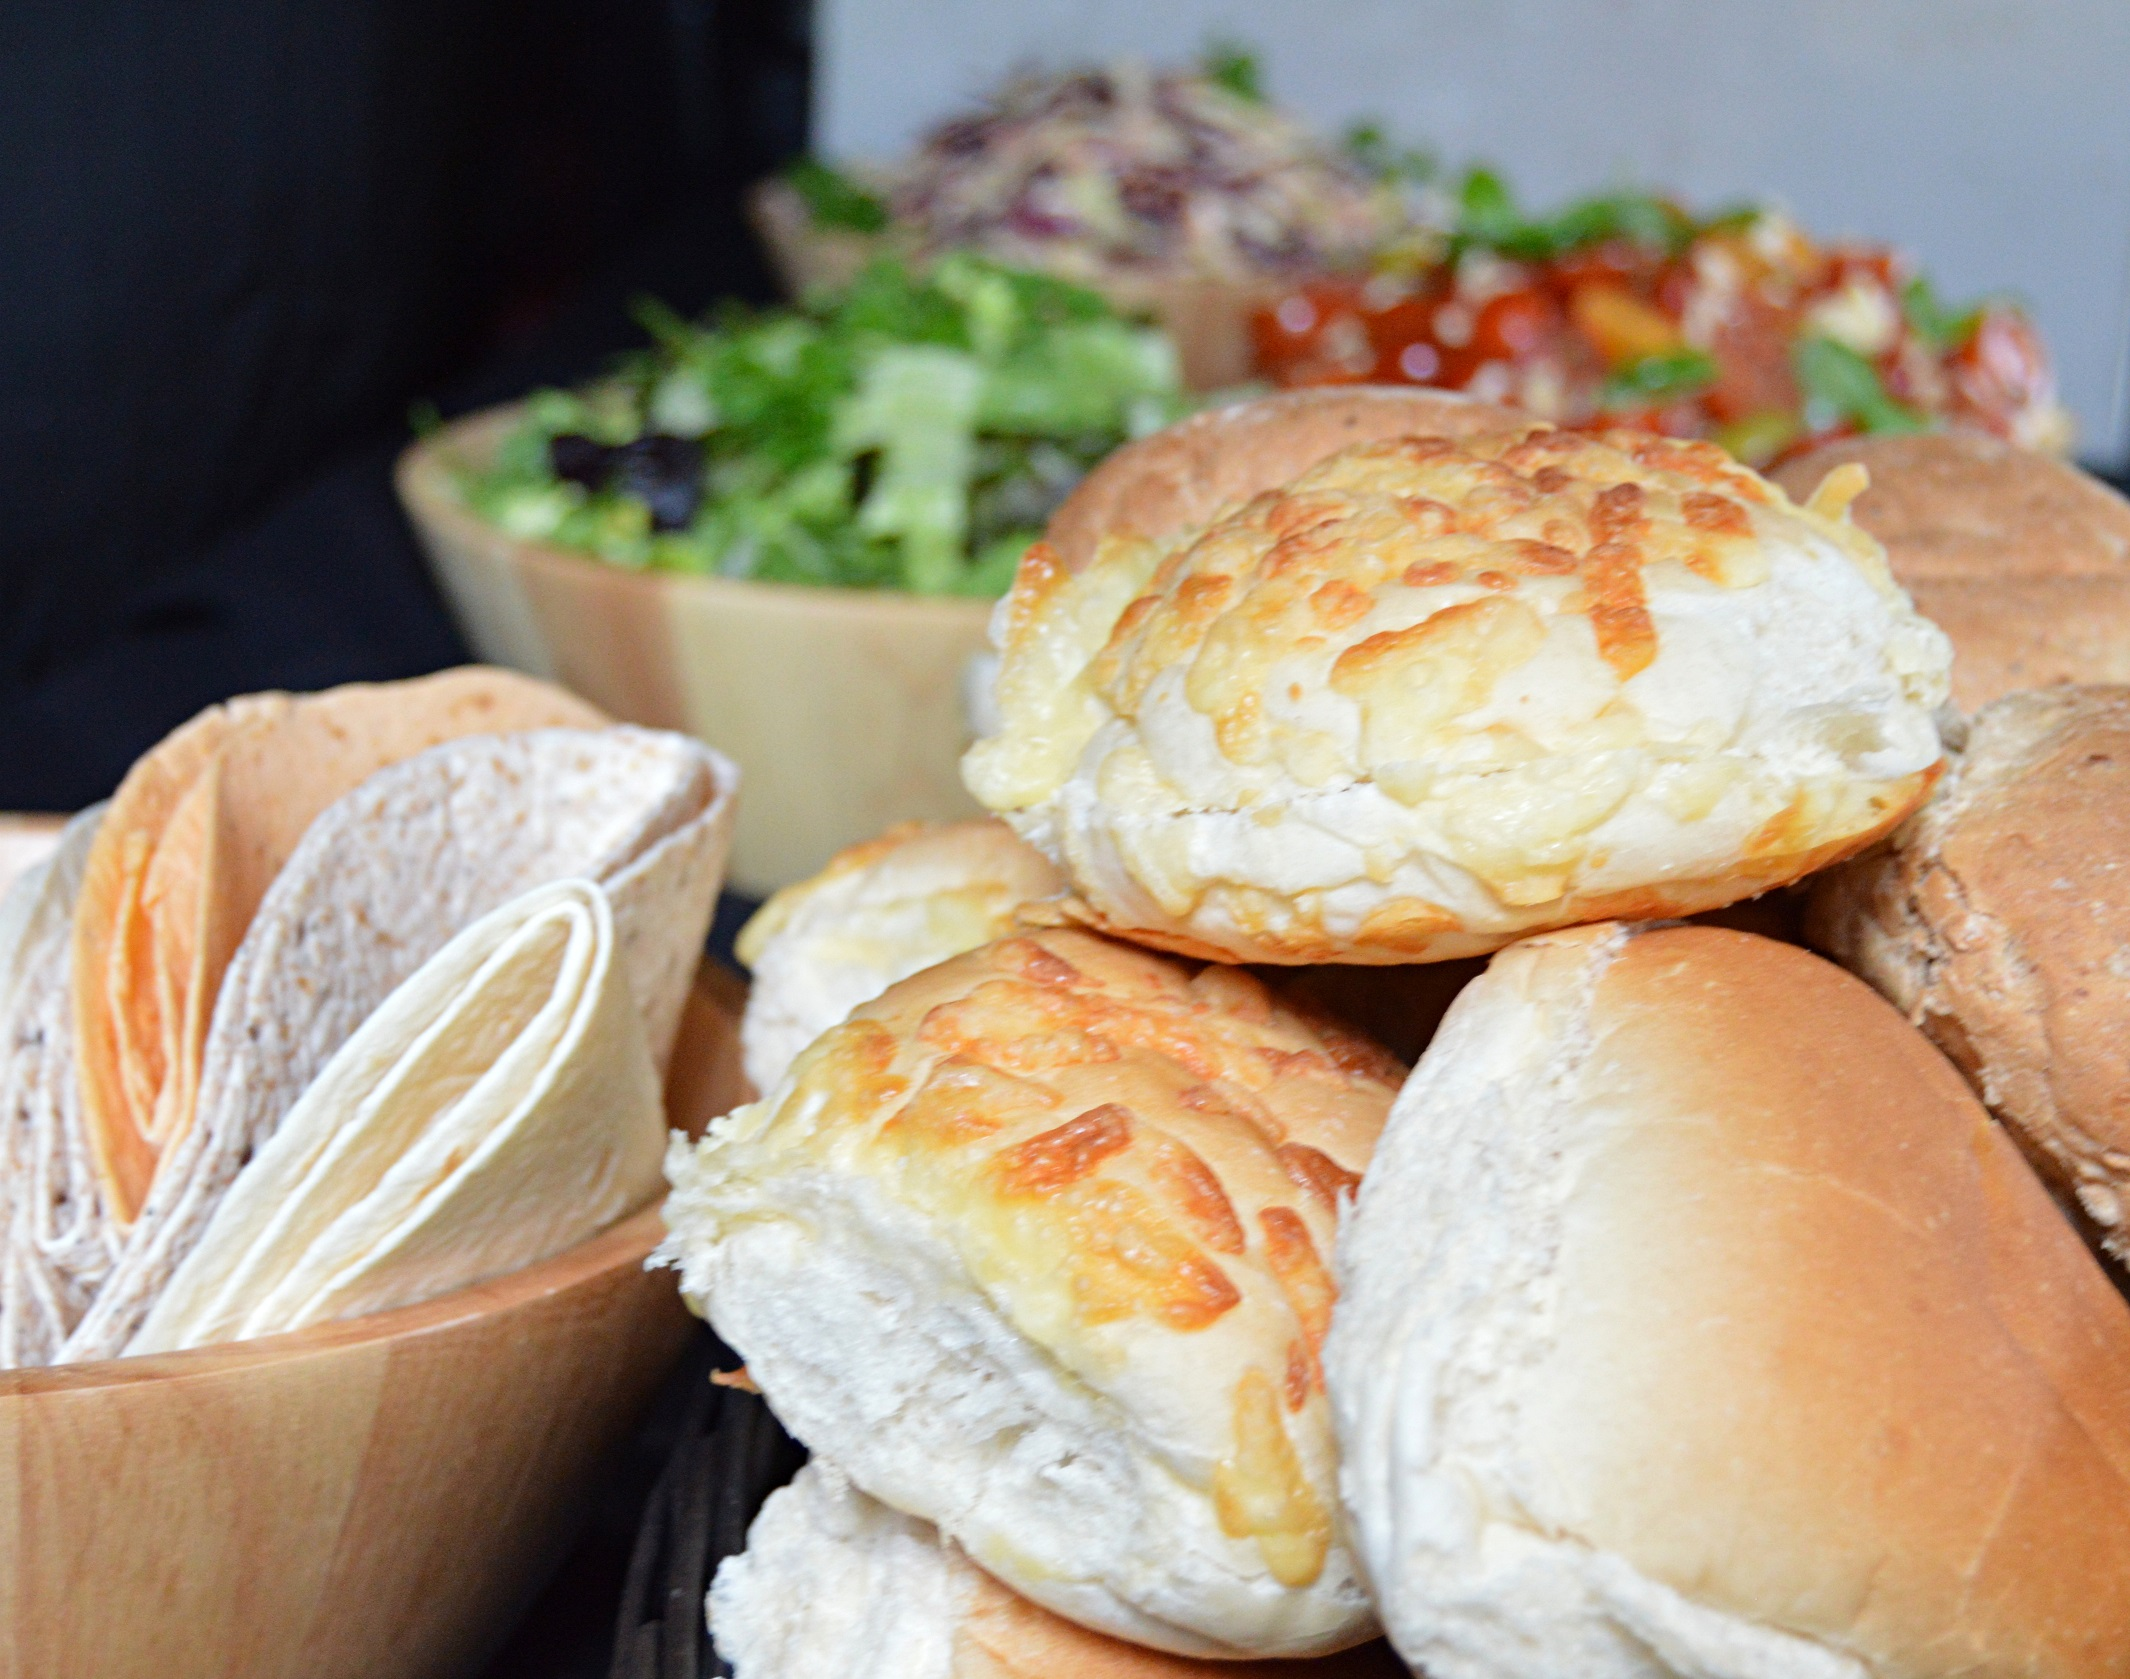 Fresh Bread Rolls, Wraps And Salads